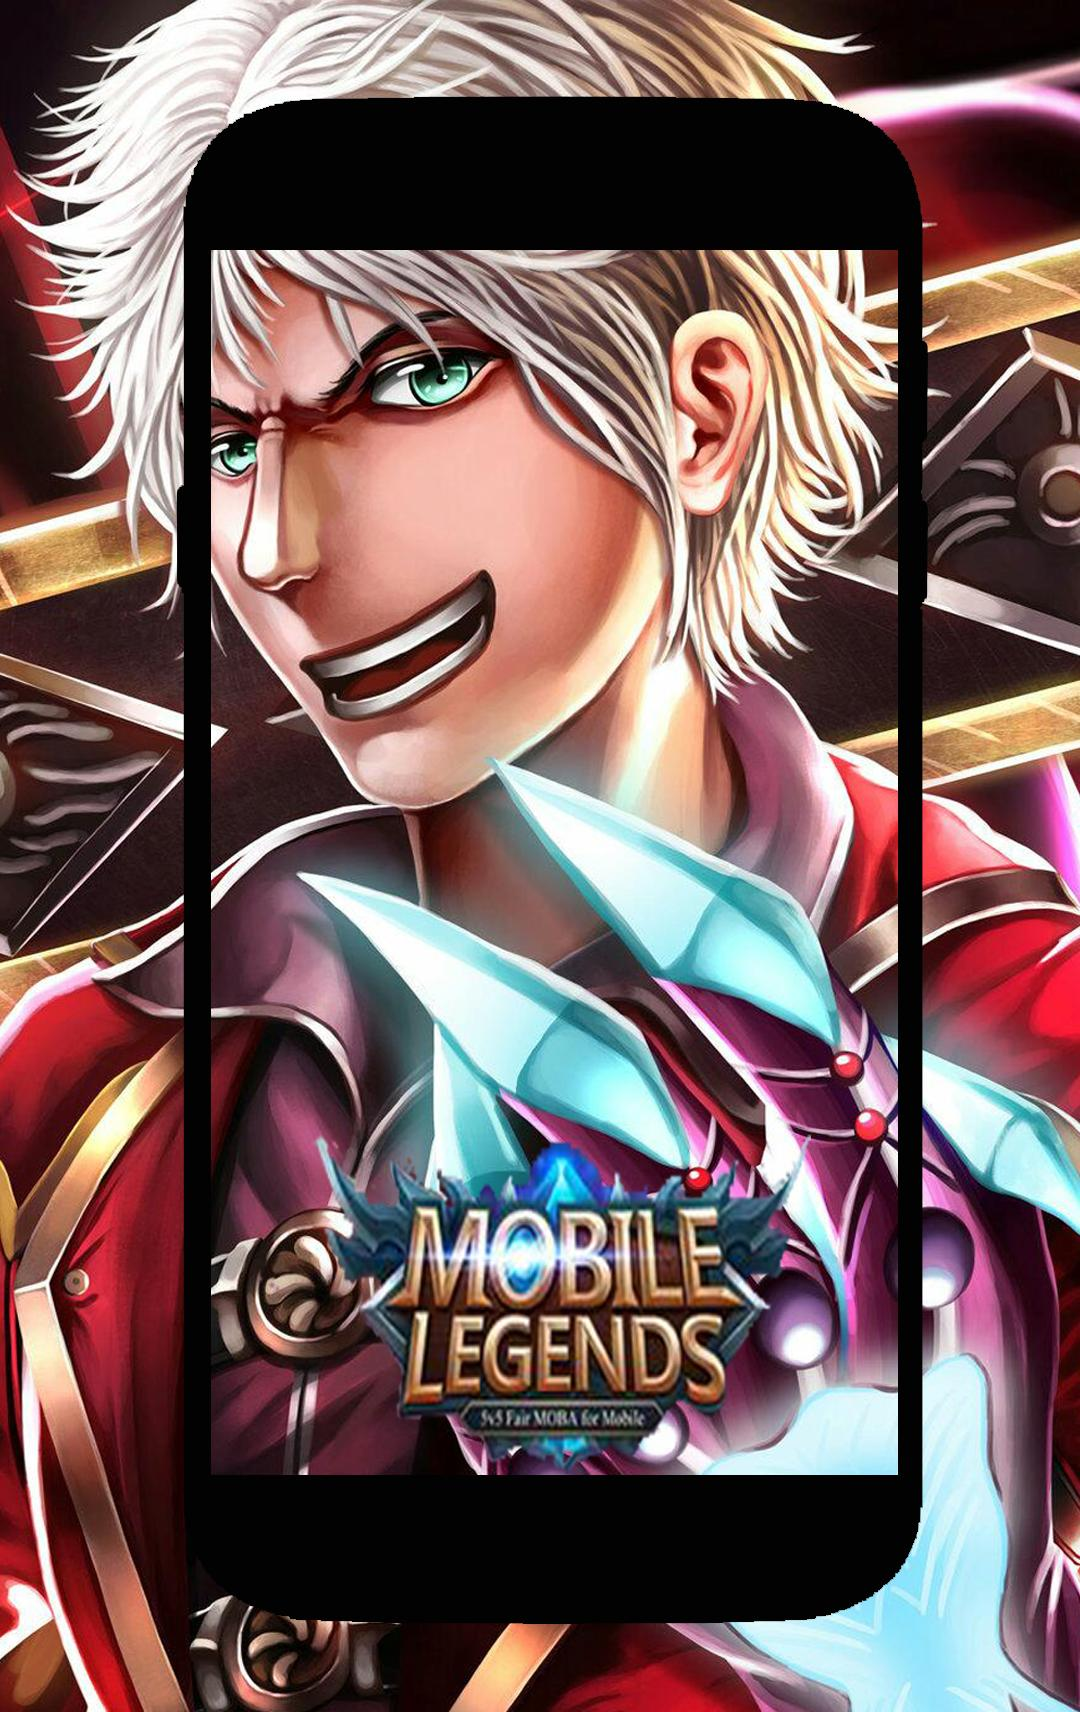 33 ] Mobile Legends Android Wallpapers On WallpaperSafari